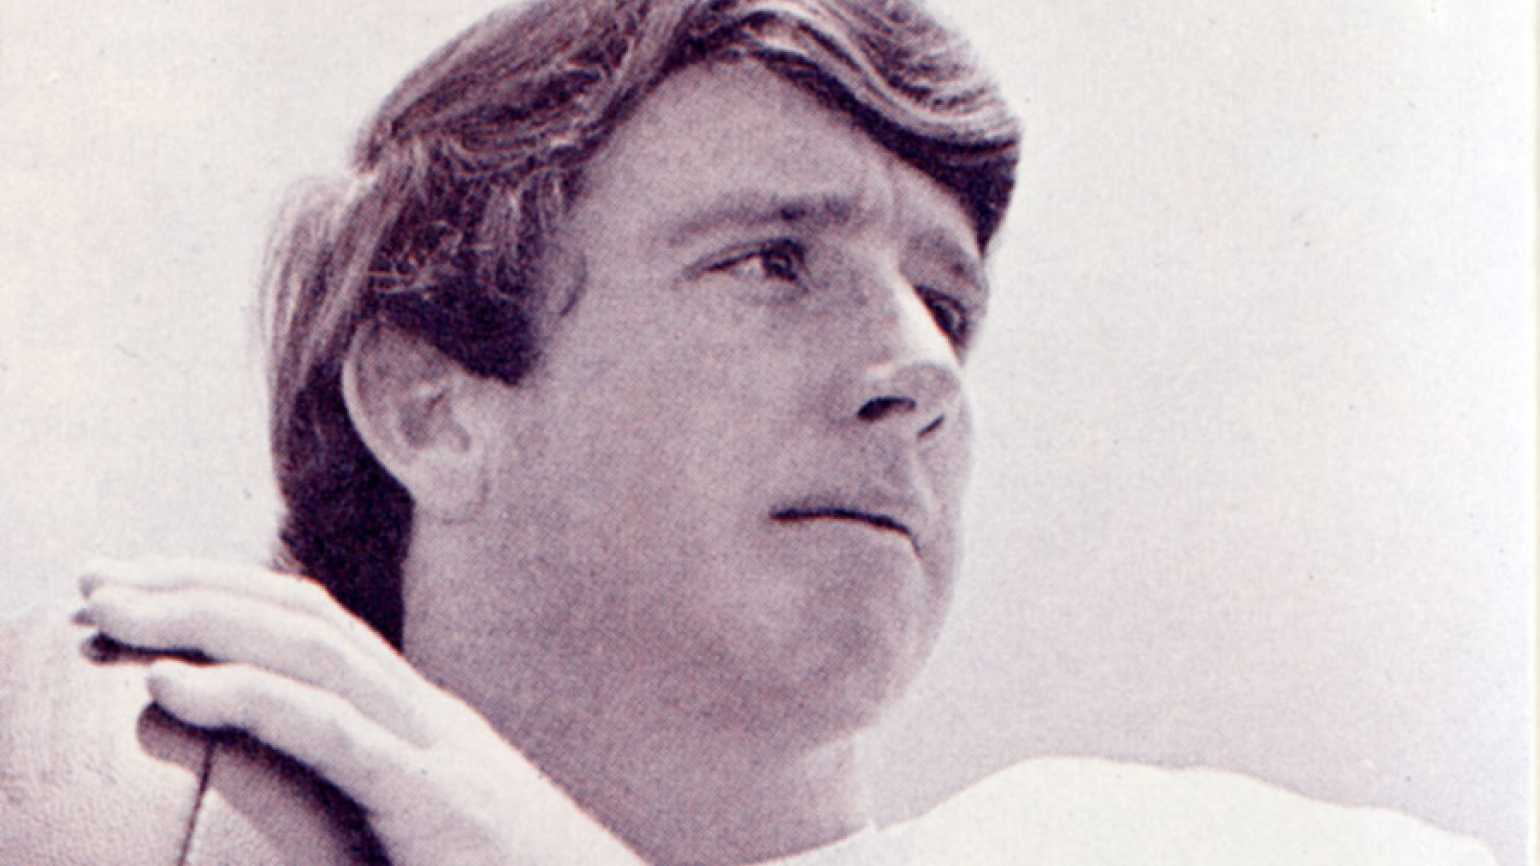 Guideposts: Quarterback Archie Manning, early in his football career